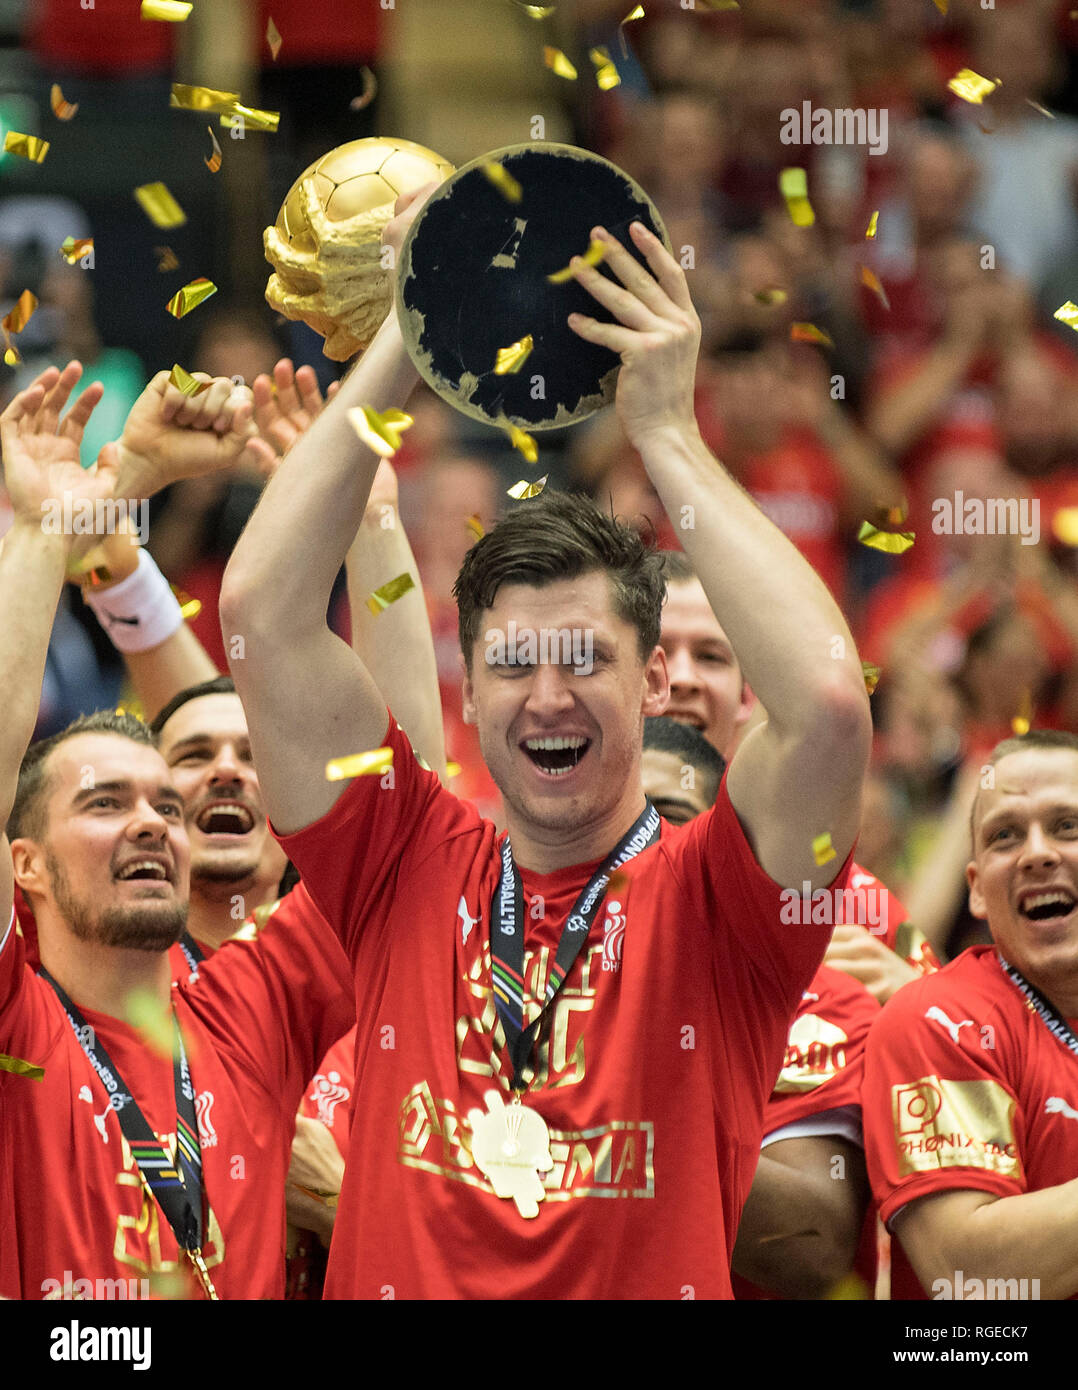 Award ceremony, jubilation goalkeeper Niklas LANDIN r. (DEN) with Cup, Final, Norway (NOR) - Denmark (DEN), on 27.01.2019 in Herning/Denmark Handball World Cup 2019, from 10.01. - 27.01.2019 in Germany/Denmark. | usage worldwide Stock Photo